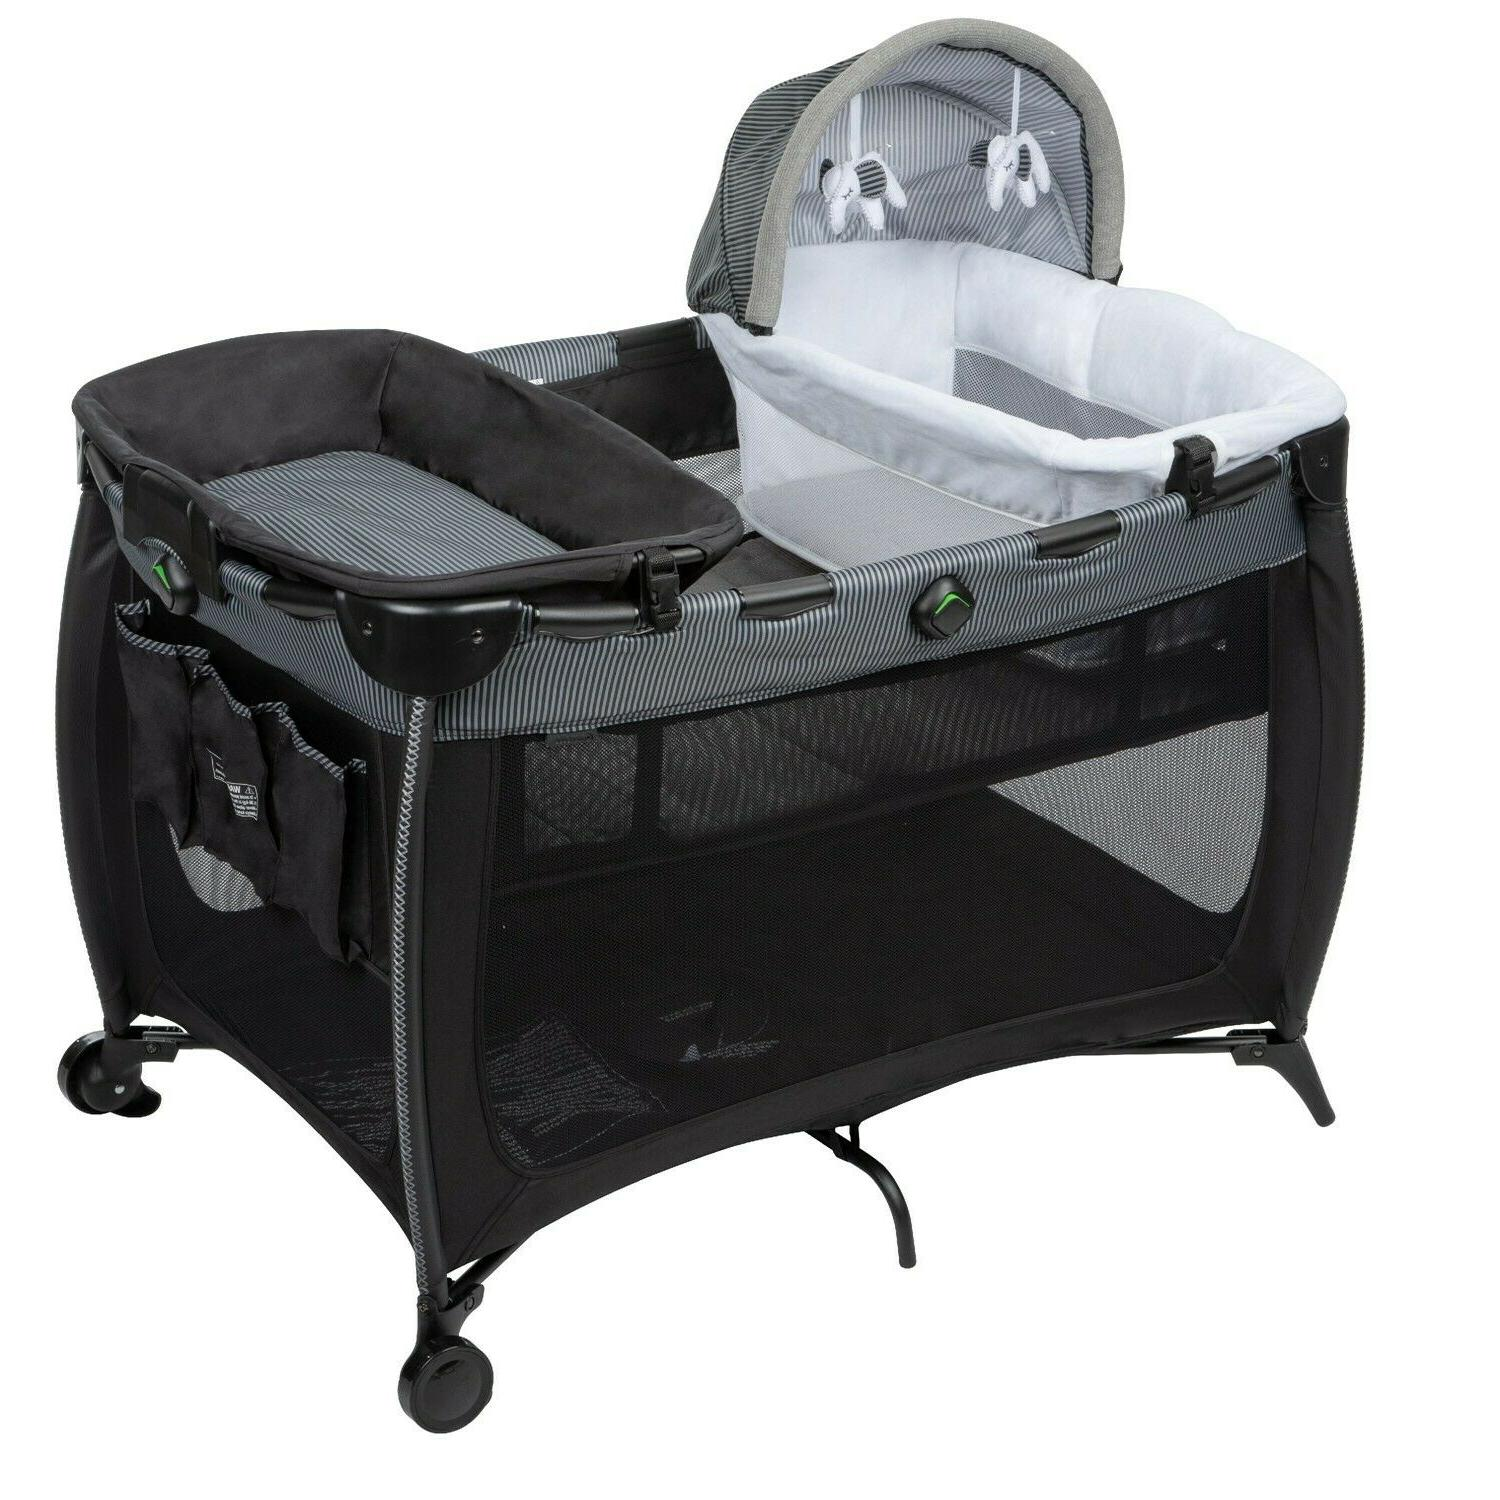 Baby Stroller Travel with High Chair Swing Black